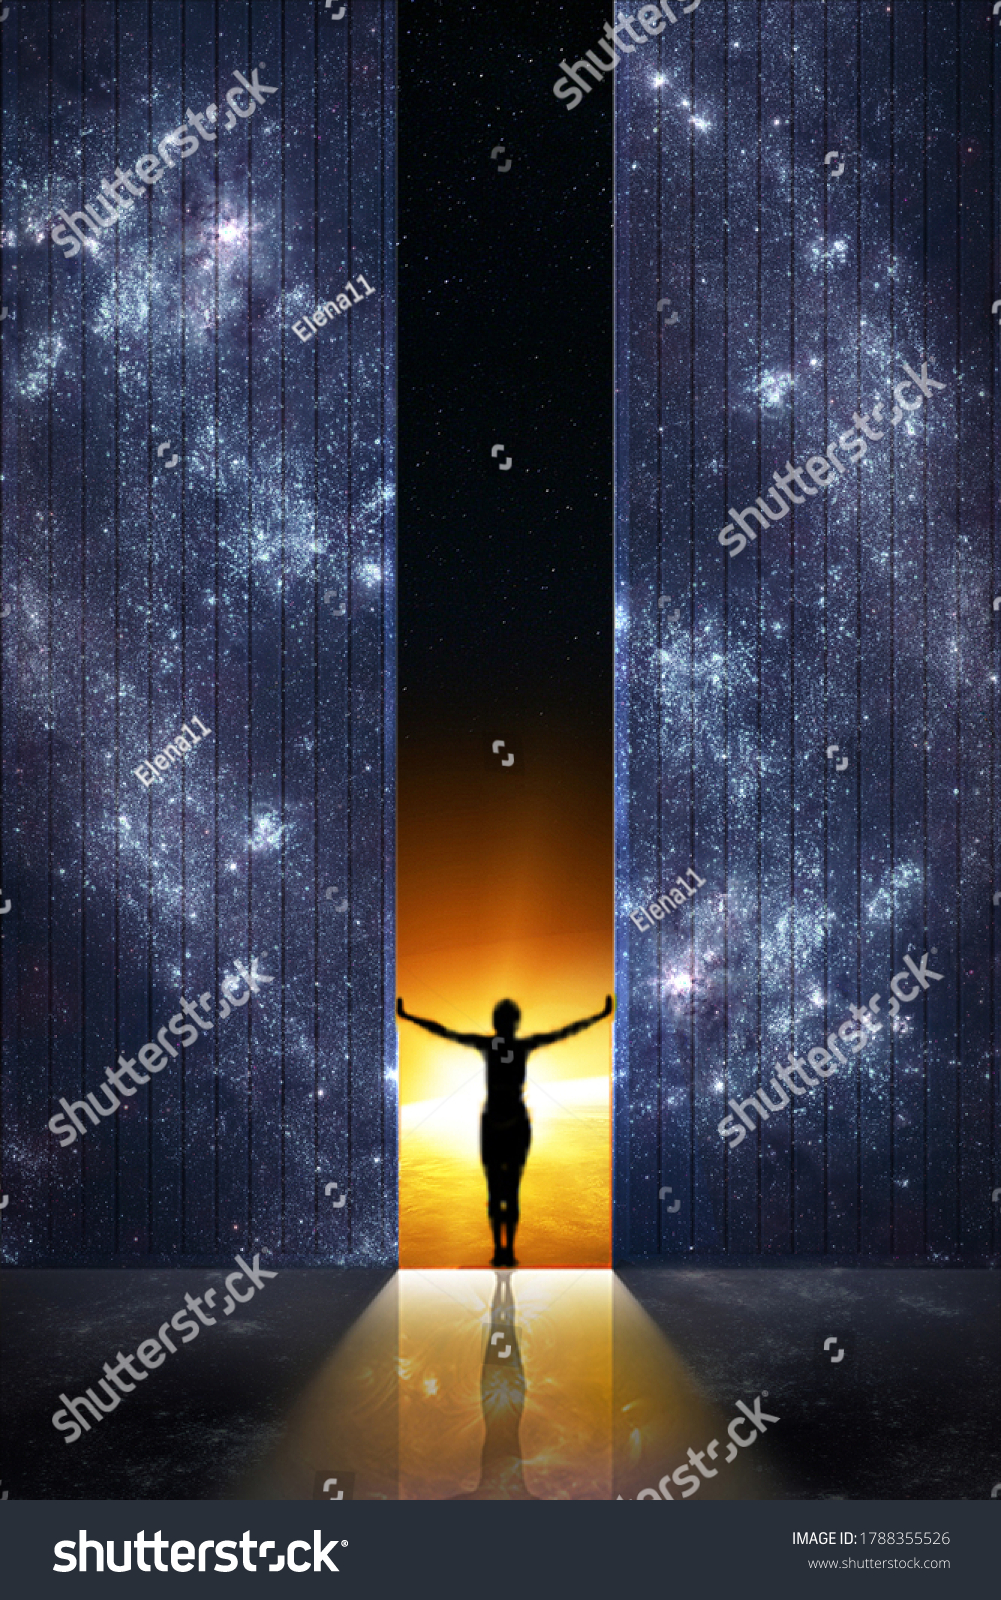 Expand boundaries concept. Woman silhouette opens the gate from starry night room into the sunrise. Elements of this image furnished by NASA. #1788355526